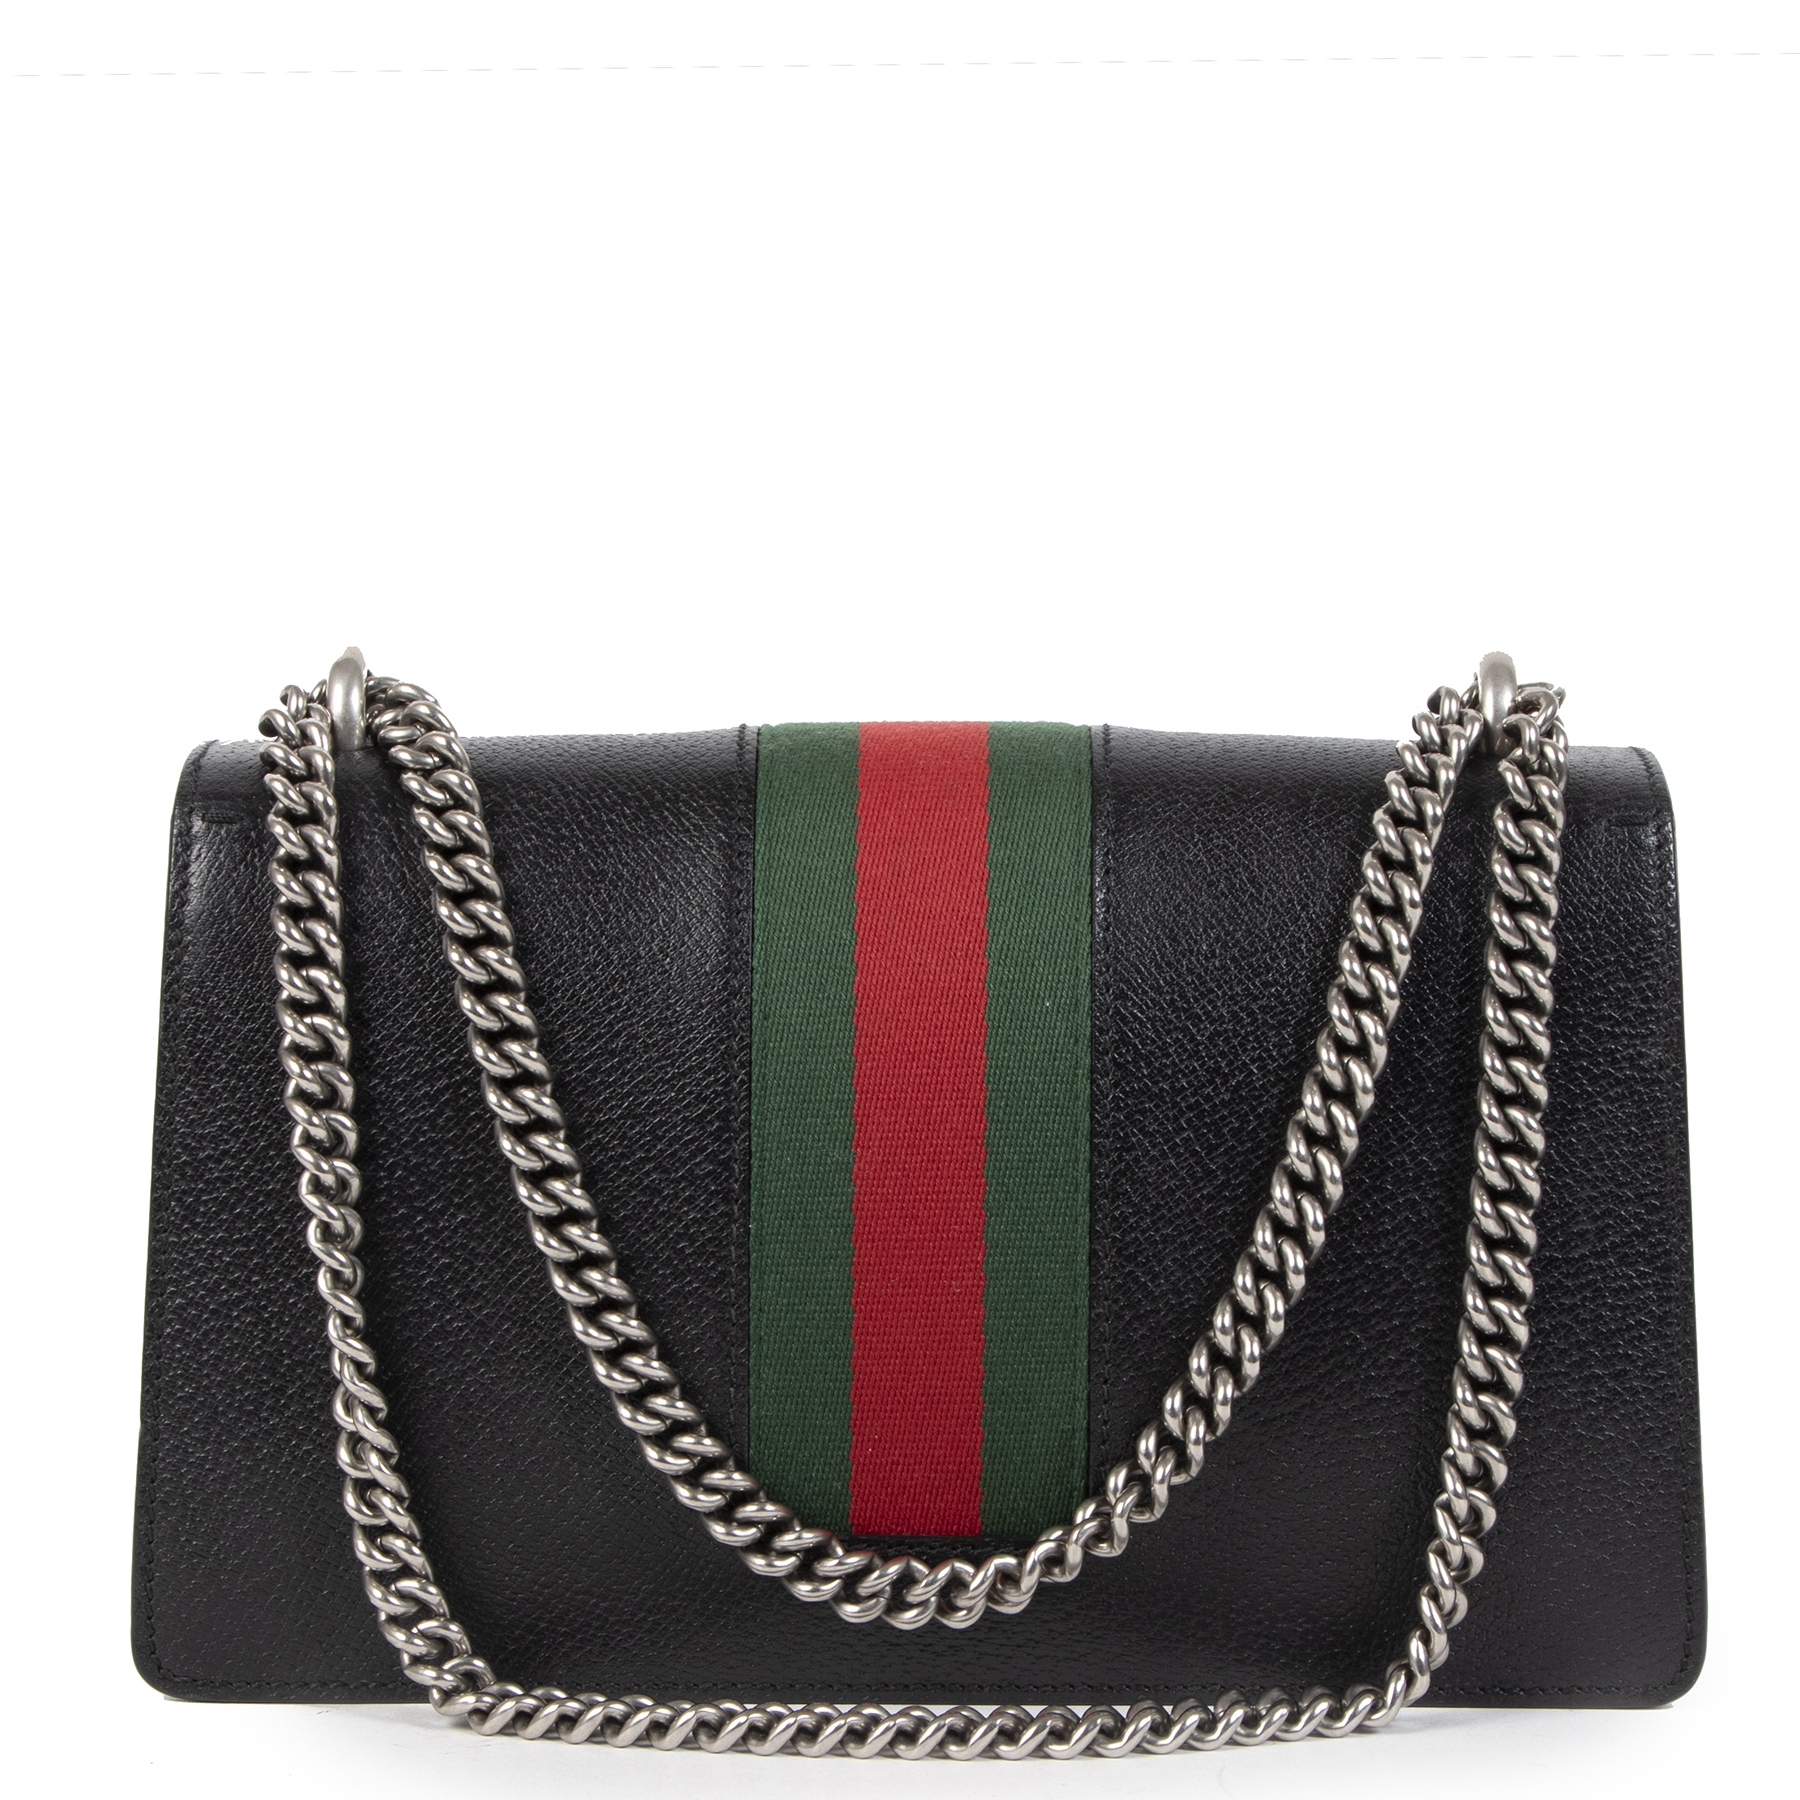 Buy authentic secondhand Gucci Dyonisus Web Black Shoulder Bag at the right price safe and secure online at LabelLOV webshop Antwerp Belgium